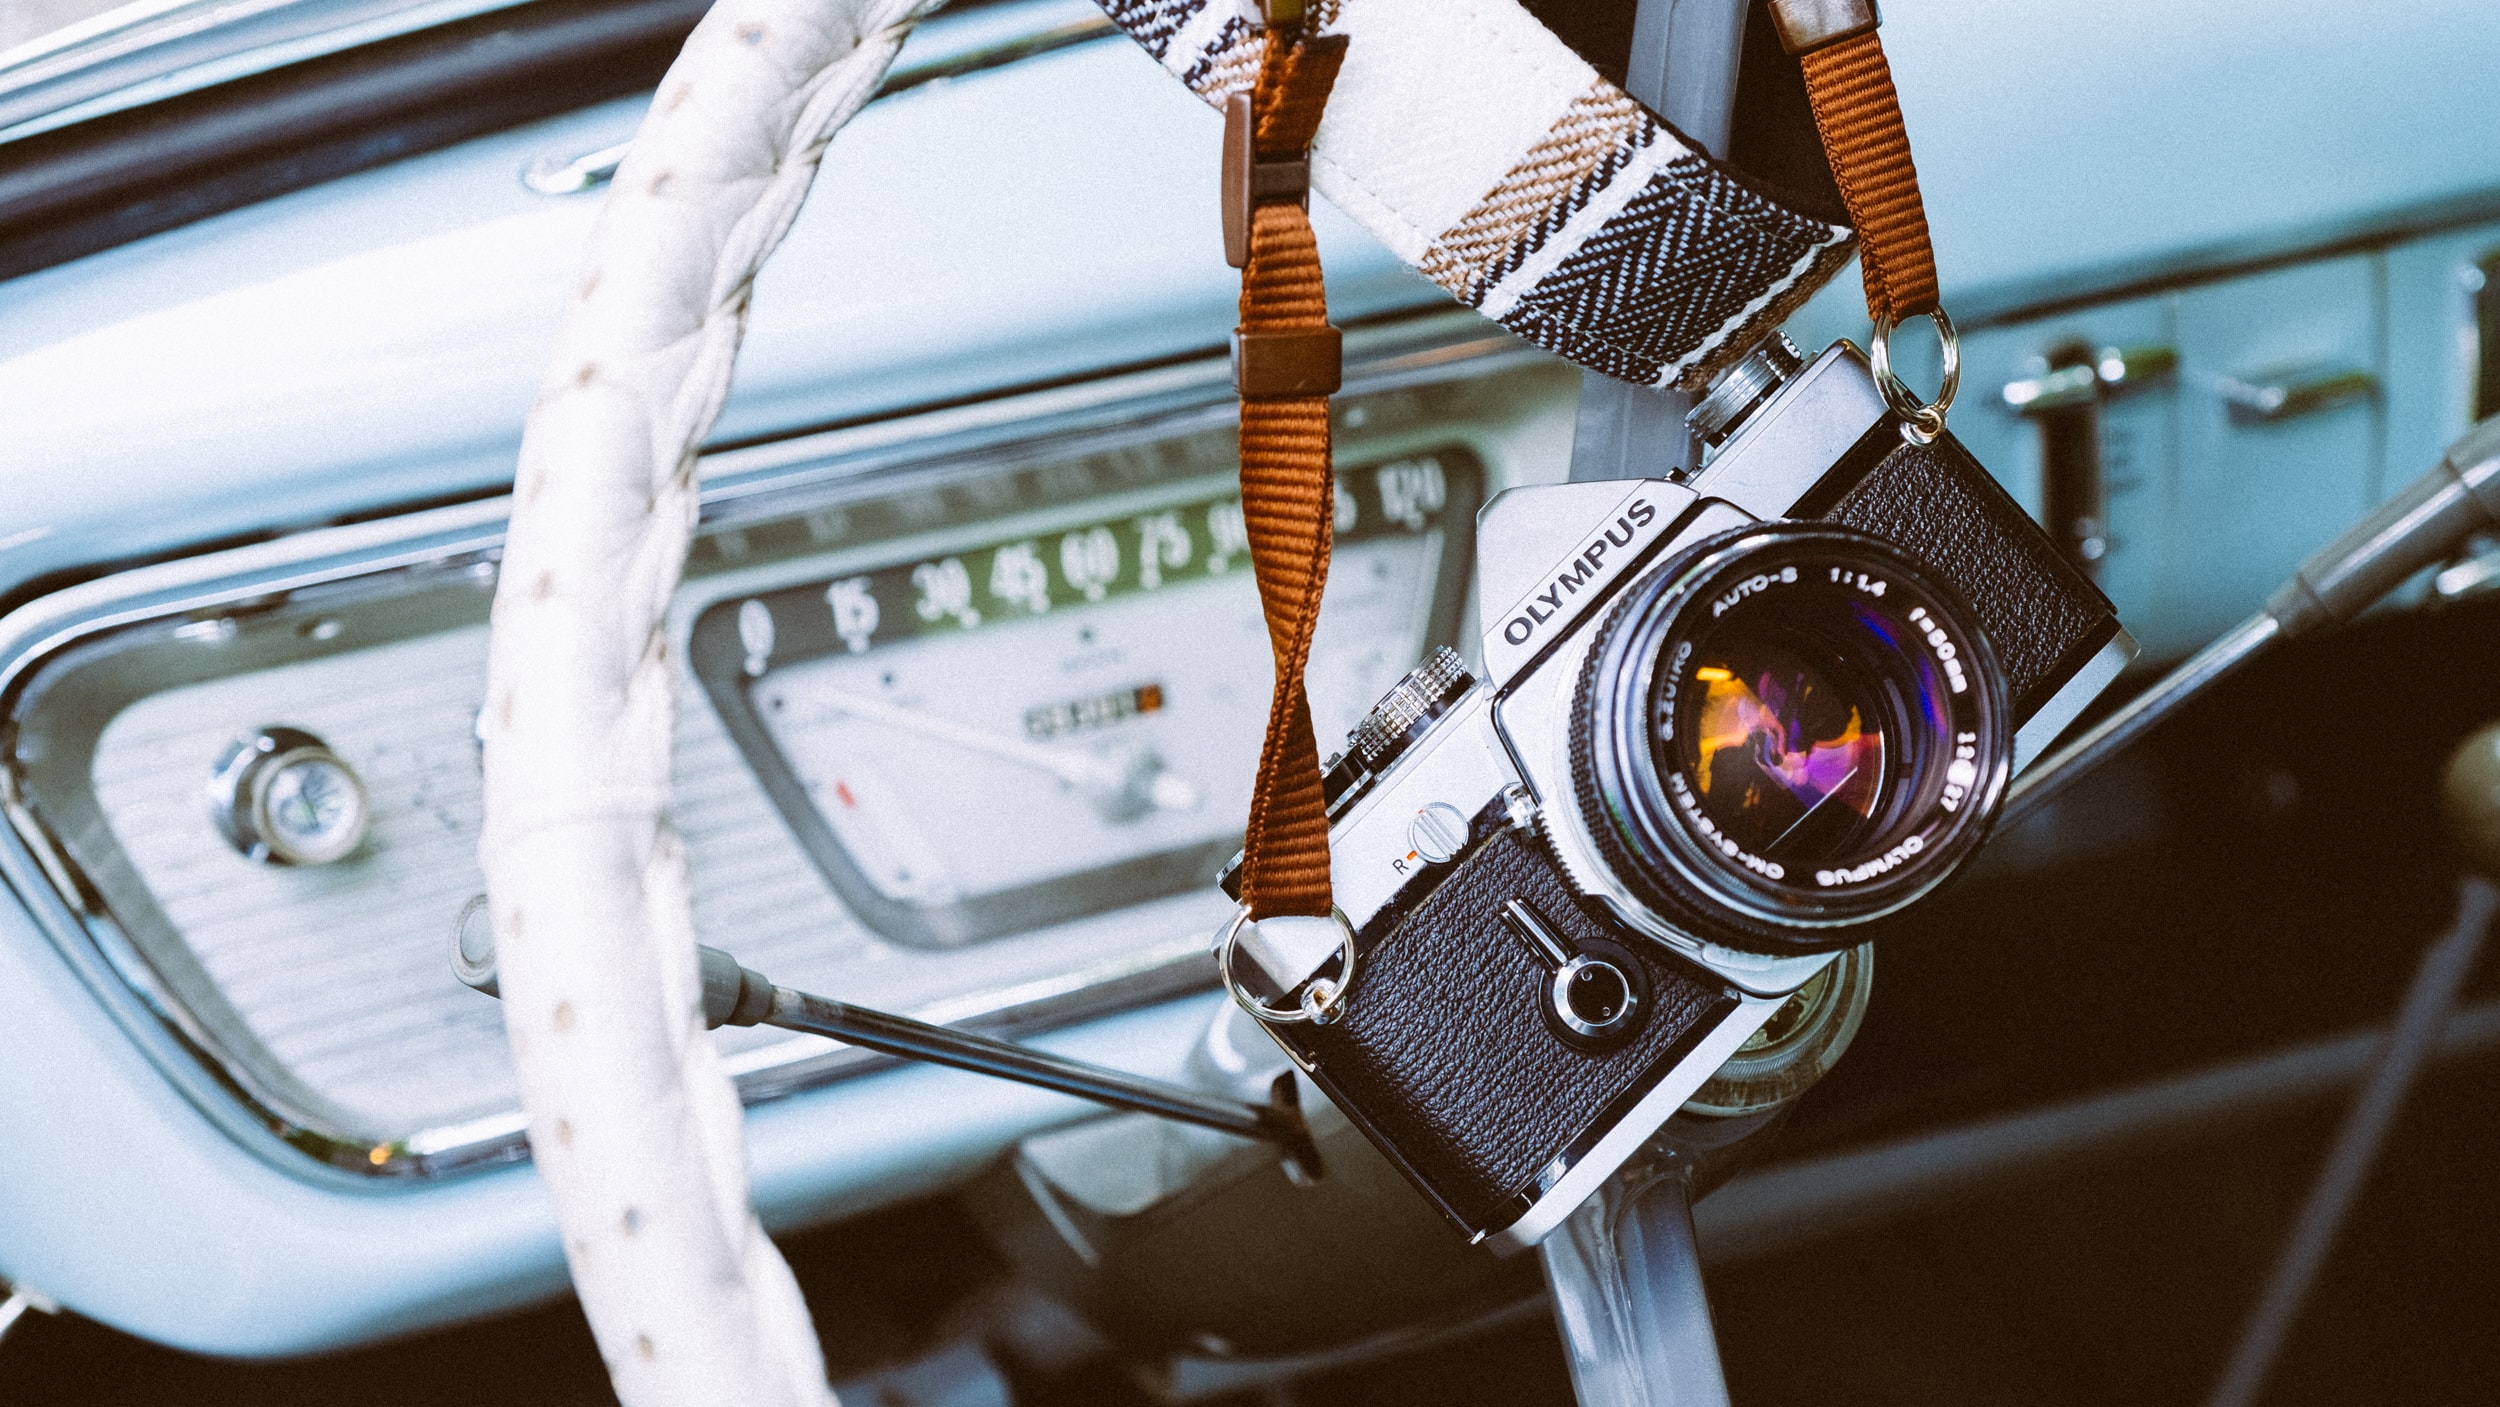 Olympus camera and strap on top of a white steering wheel in a vintage car